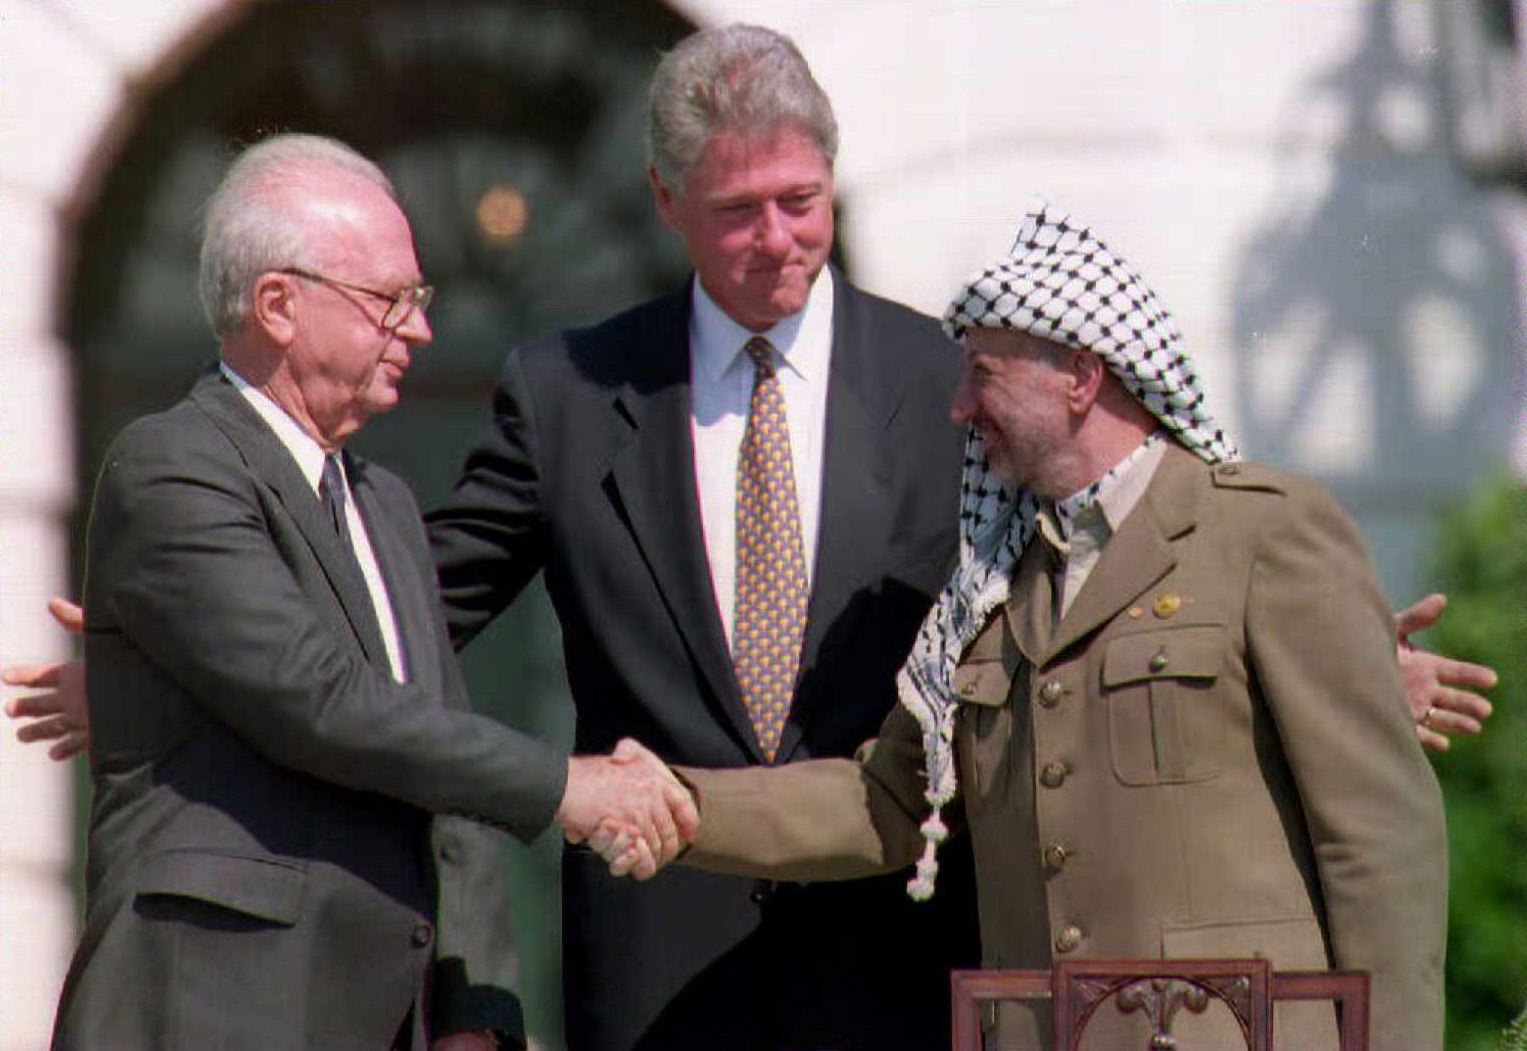 U.S. President Bill Clinton (C) stands between PLO leader Yasser Arafat (R) and Israeli Prime Minister Yitzahk Rabin (L) as they shake hands at the White House in Washington D.C. on Sept. 13, 1993.